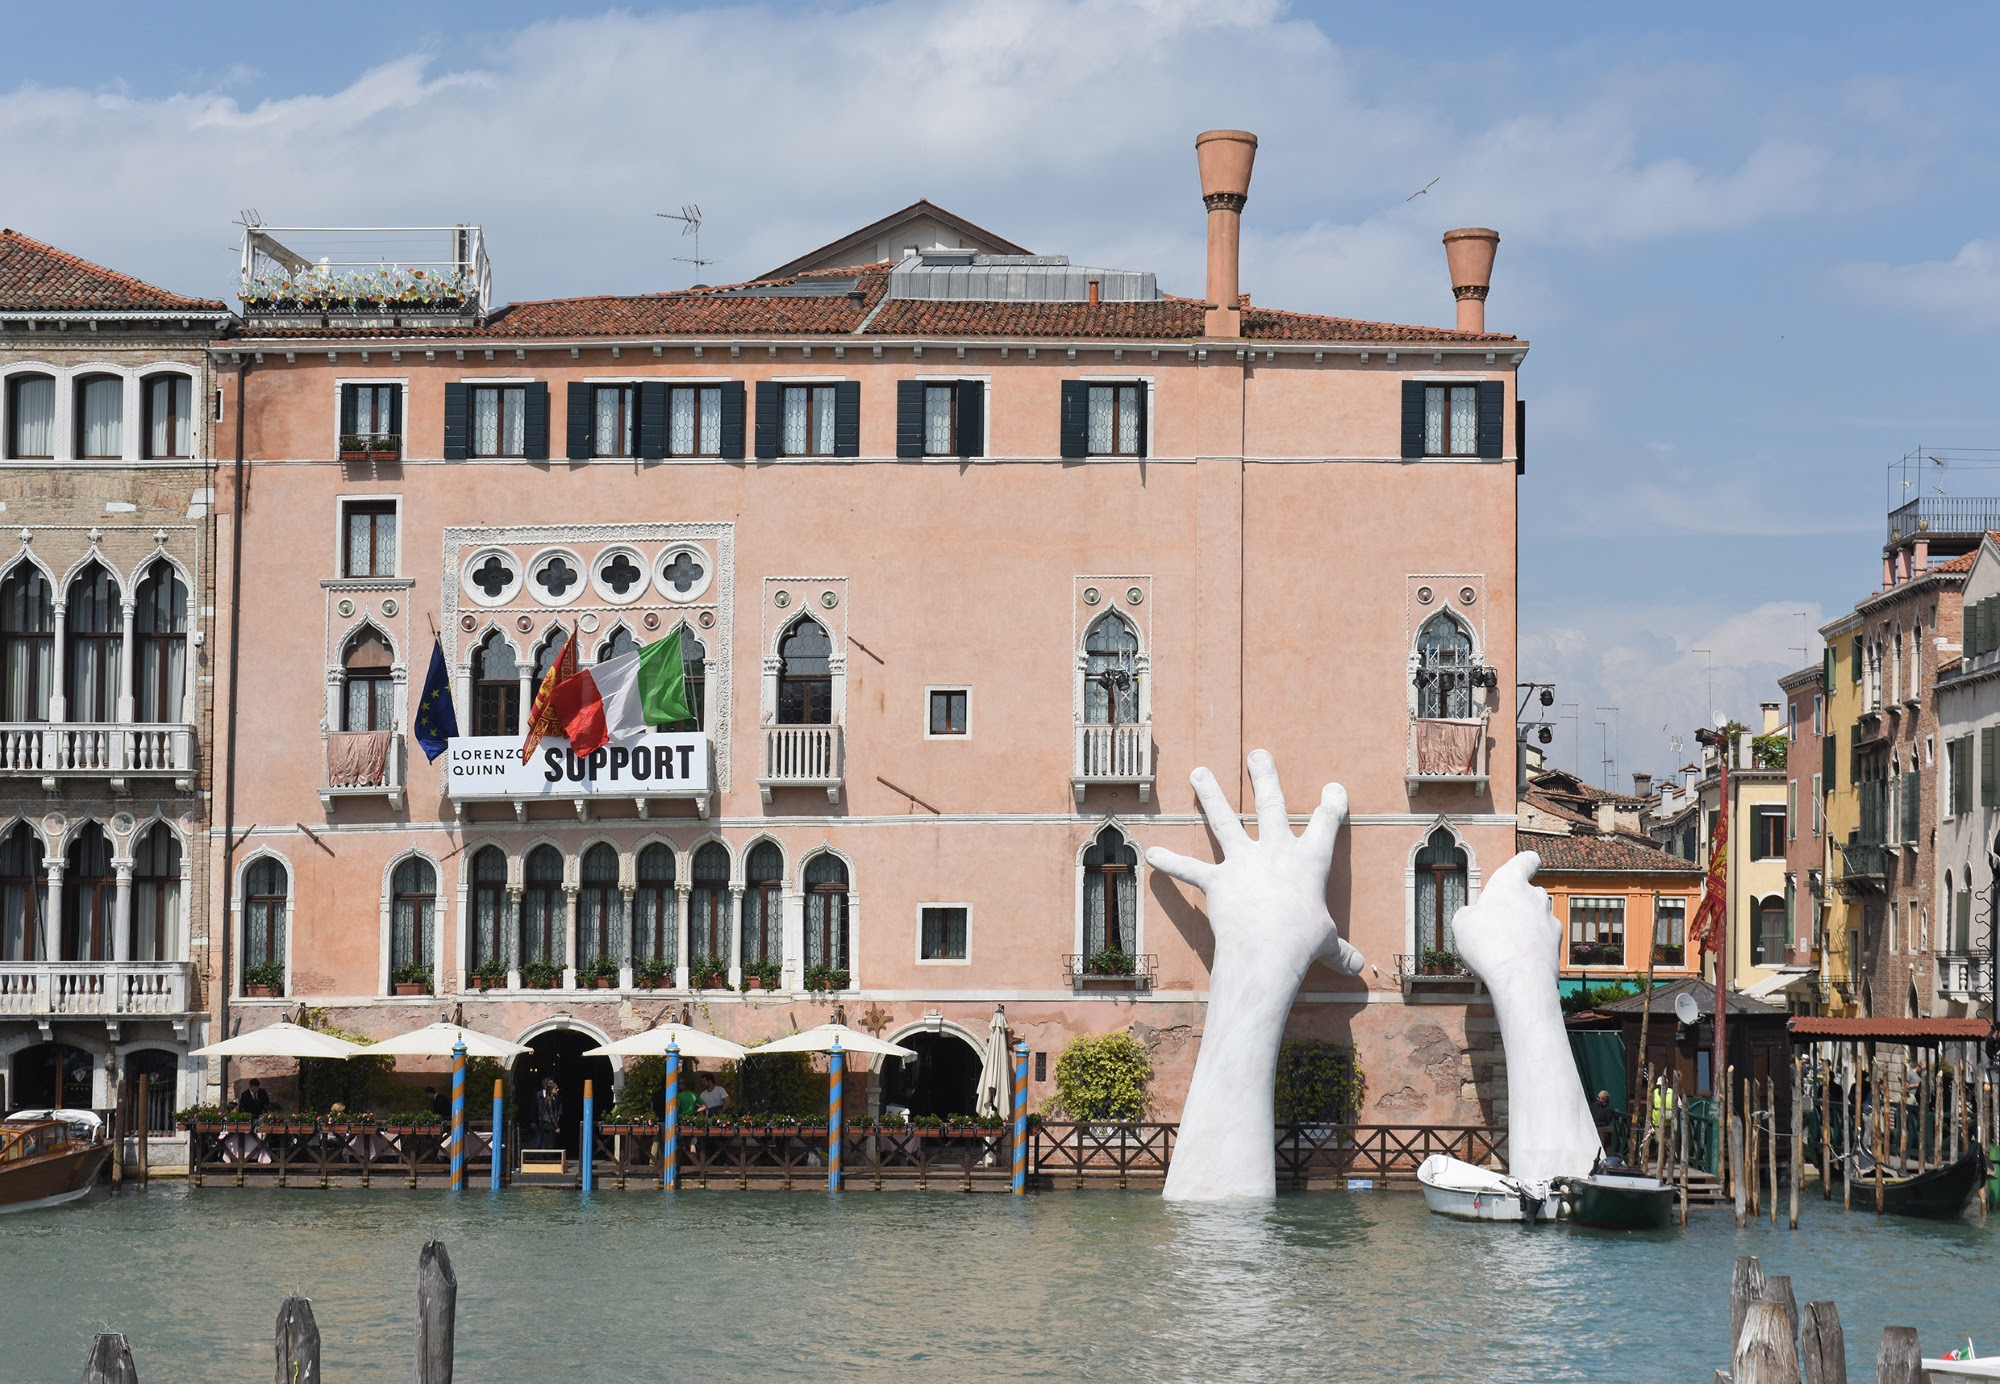 Lorenzo quinn 39 s new sculpture unveiled during venice for Design hotel venise